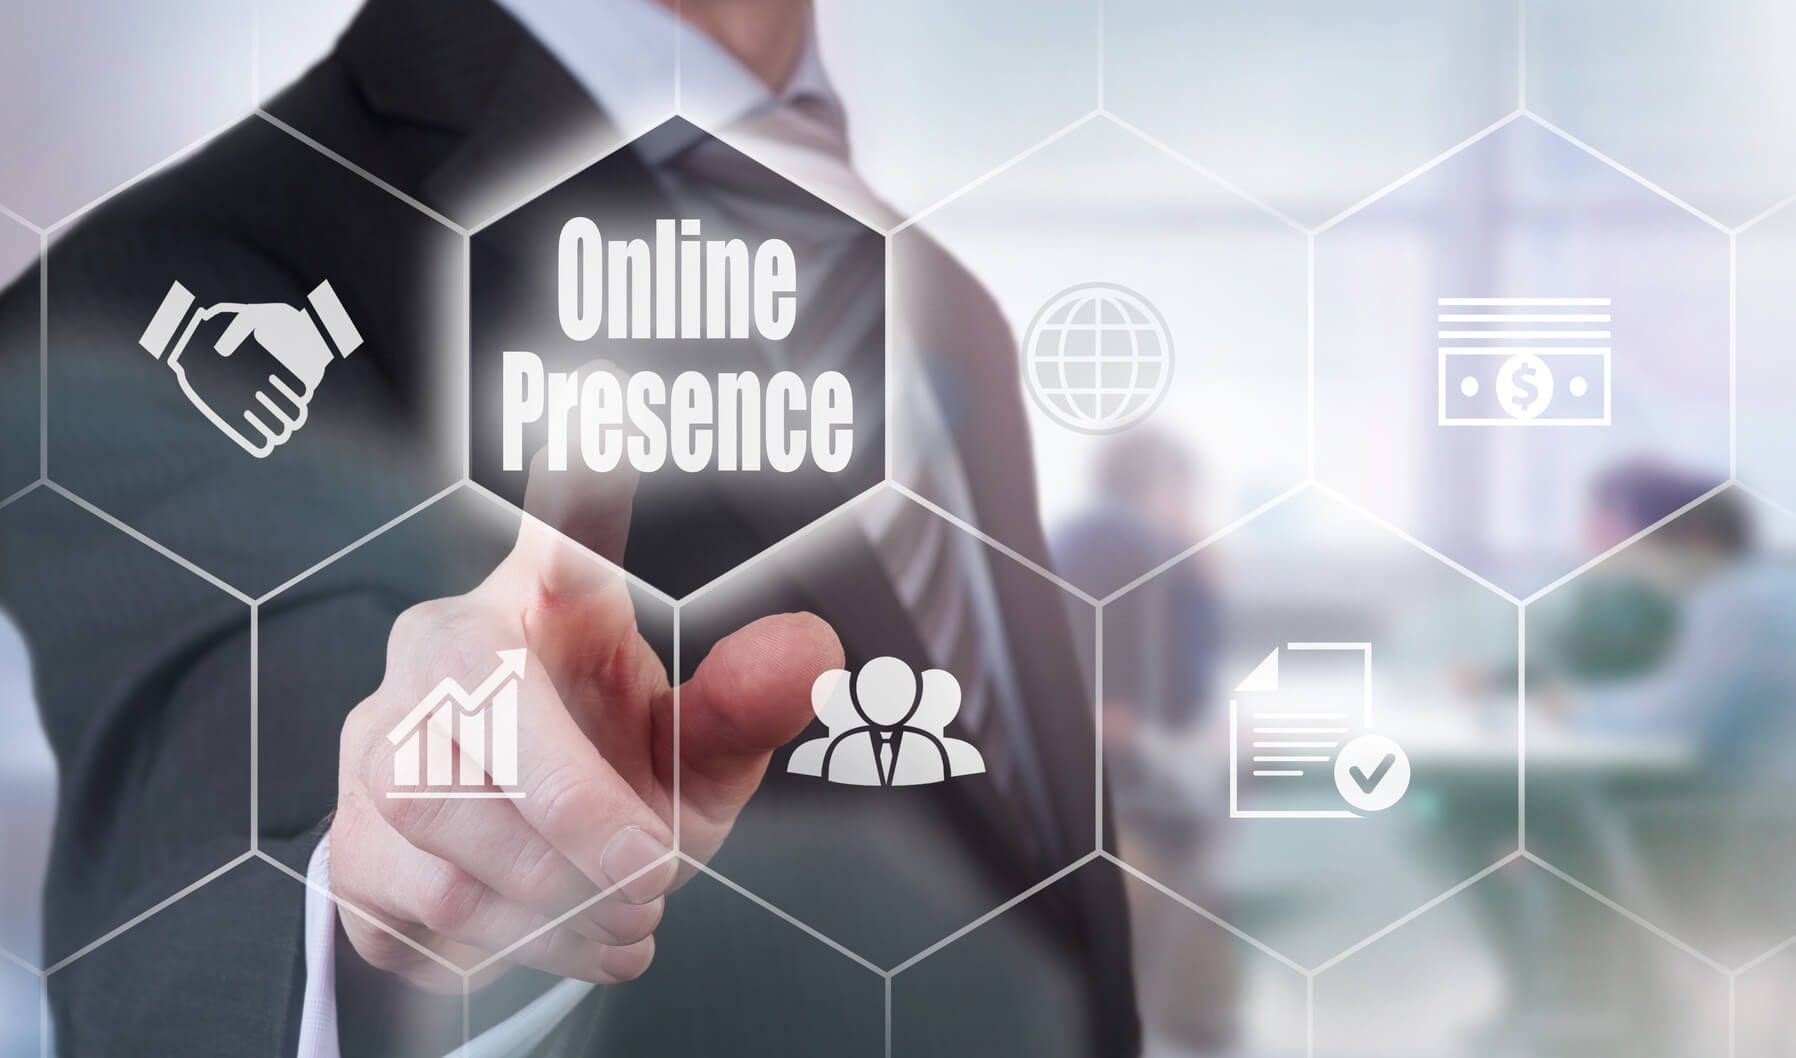 Why is it Important to Build Your Online Presence?